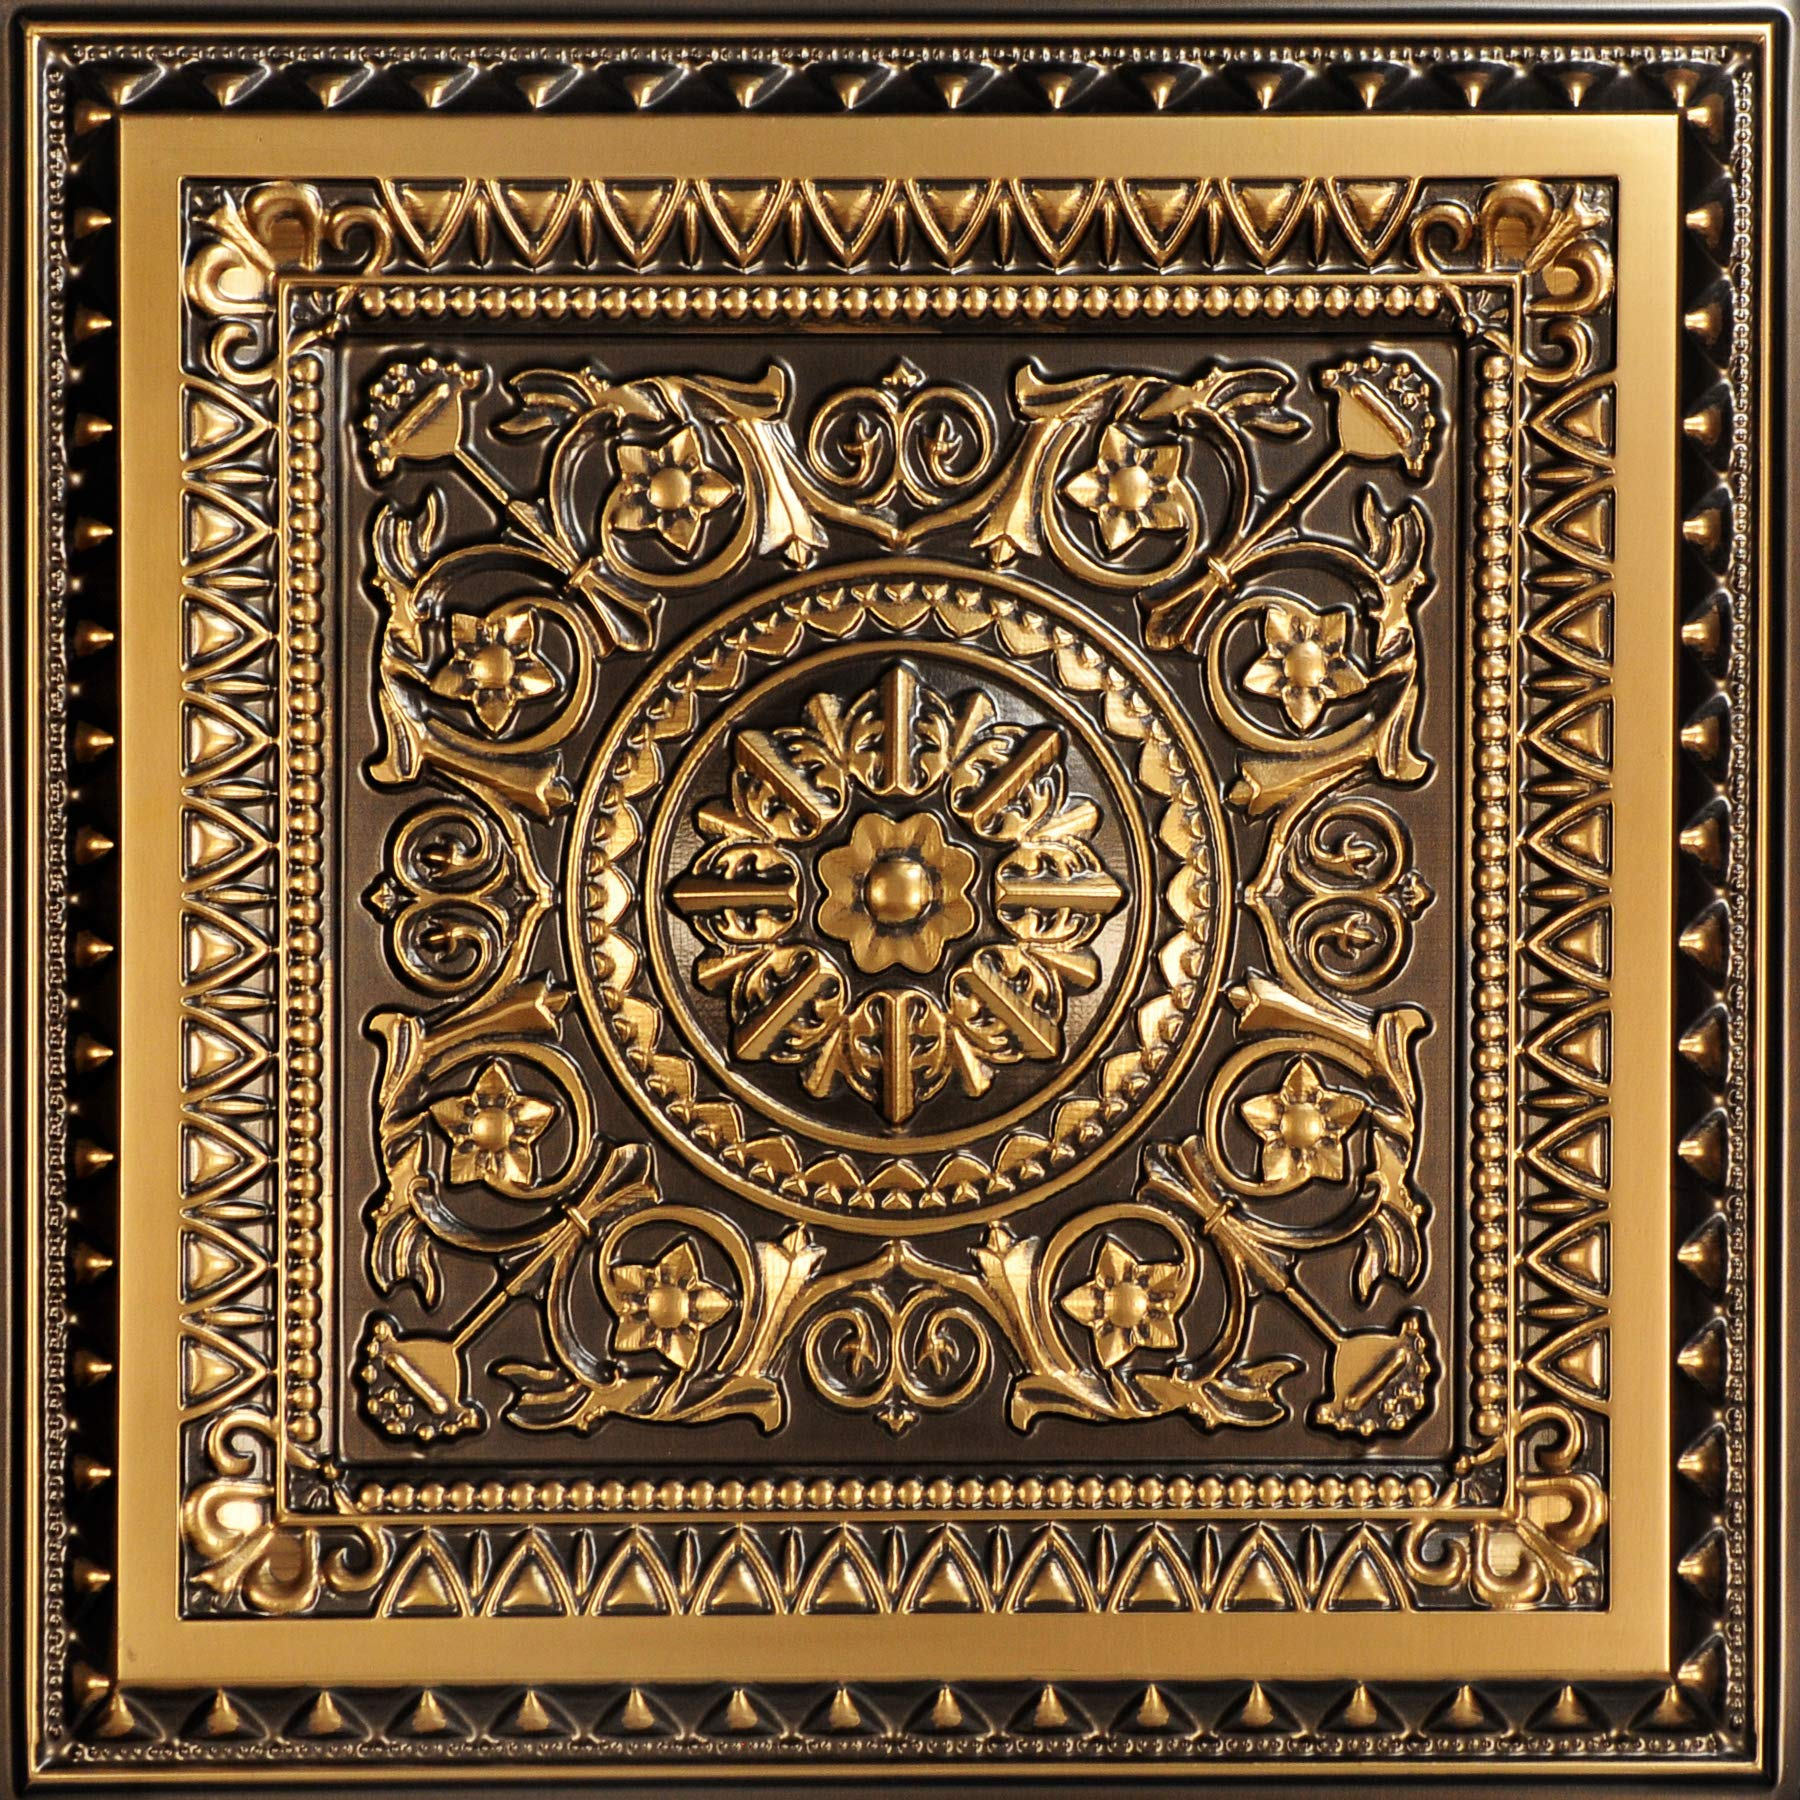 From Plain To Beautiful In Hours 223ag-24x24 Ceiling Tile, Antique Gold